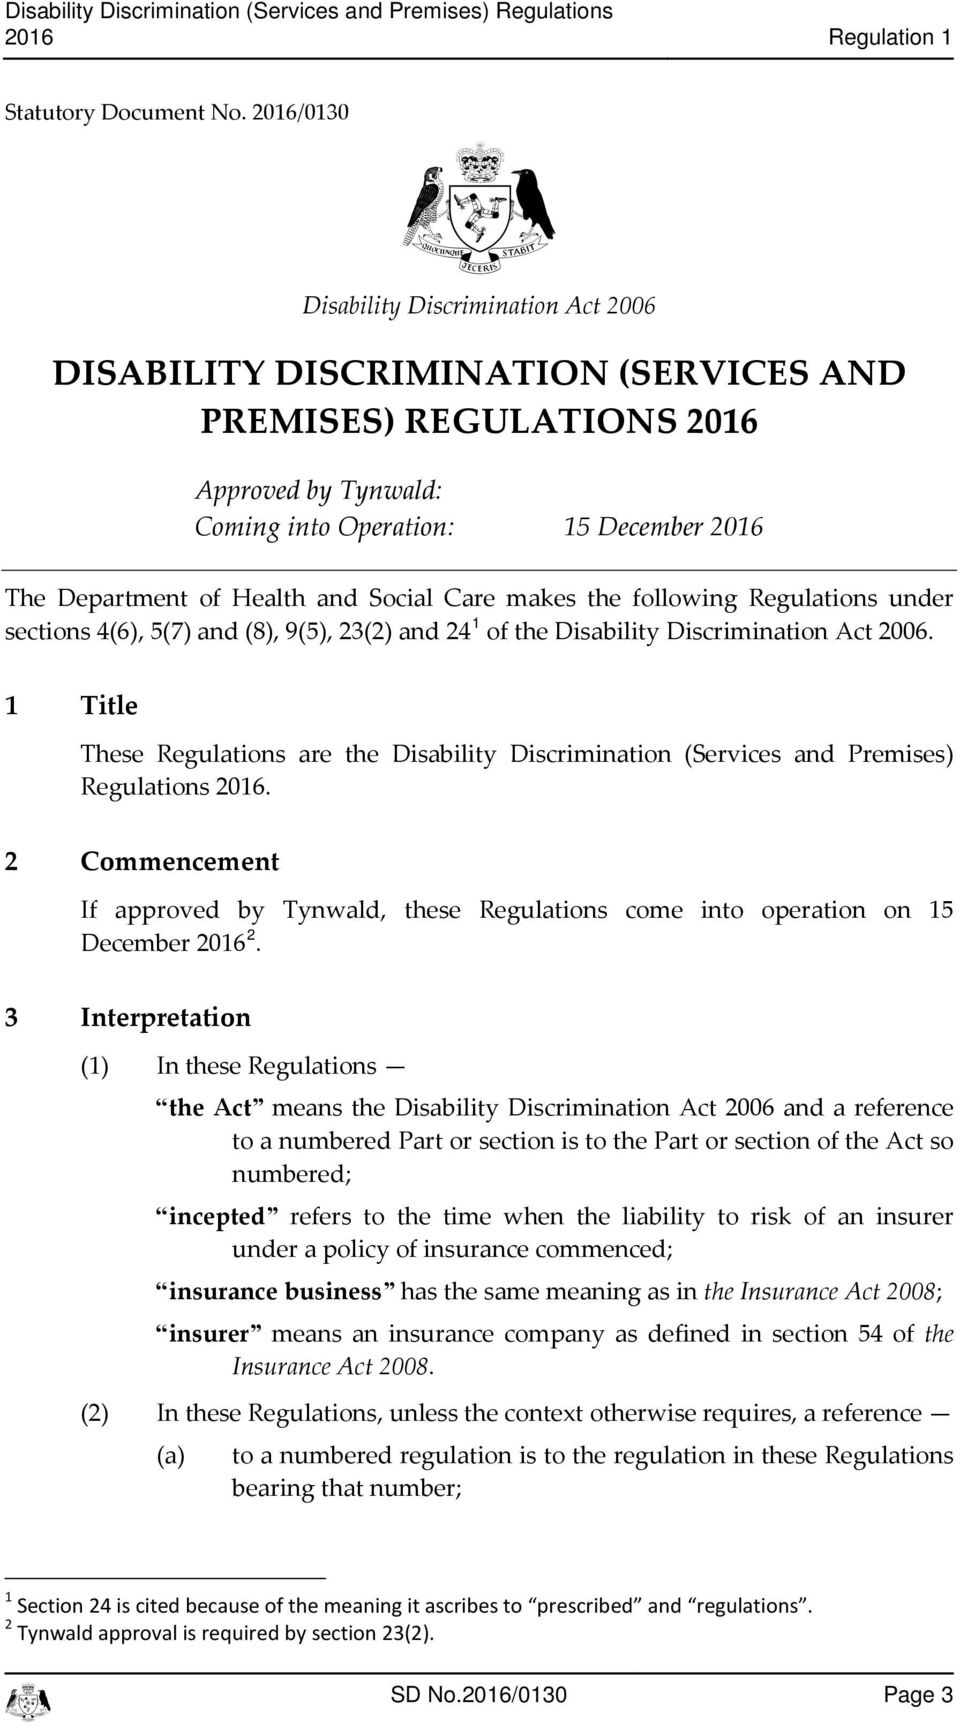 Soial Care makes the following Regulations under setions 4(6), 5(7) and (8), 9(5), 23(2) and 24 1 of the Disability Disrimination At 2006.